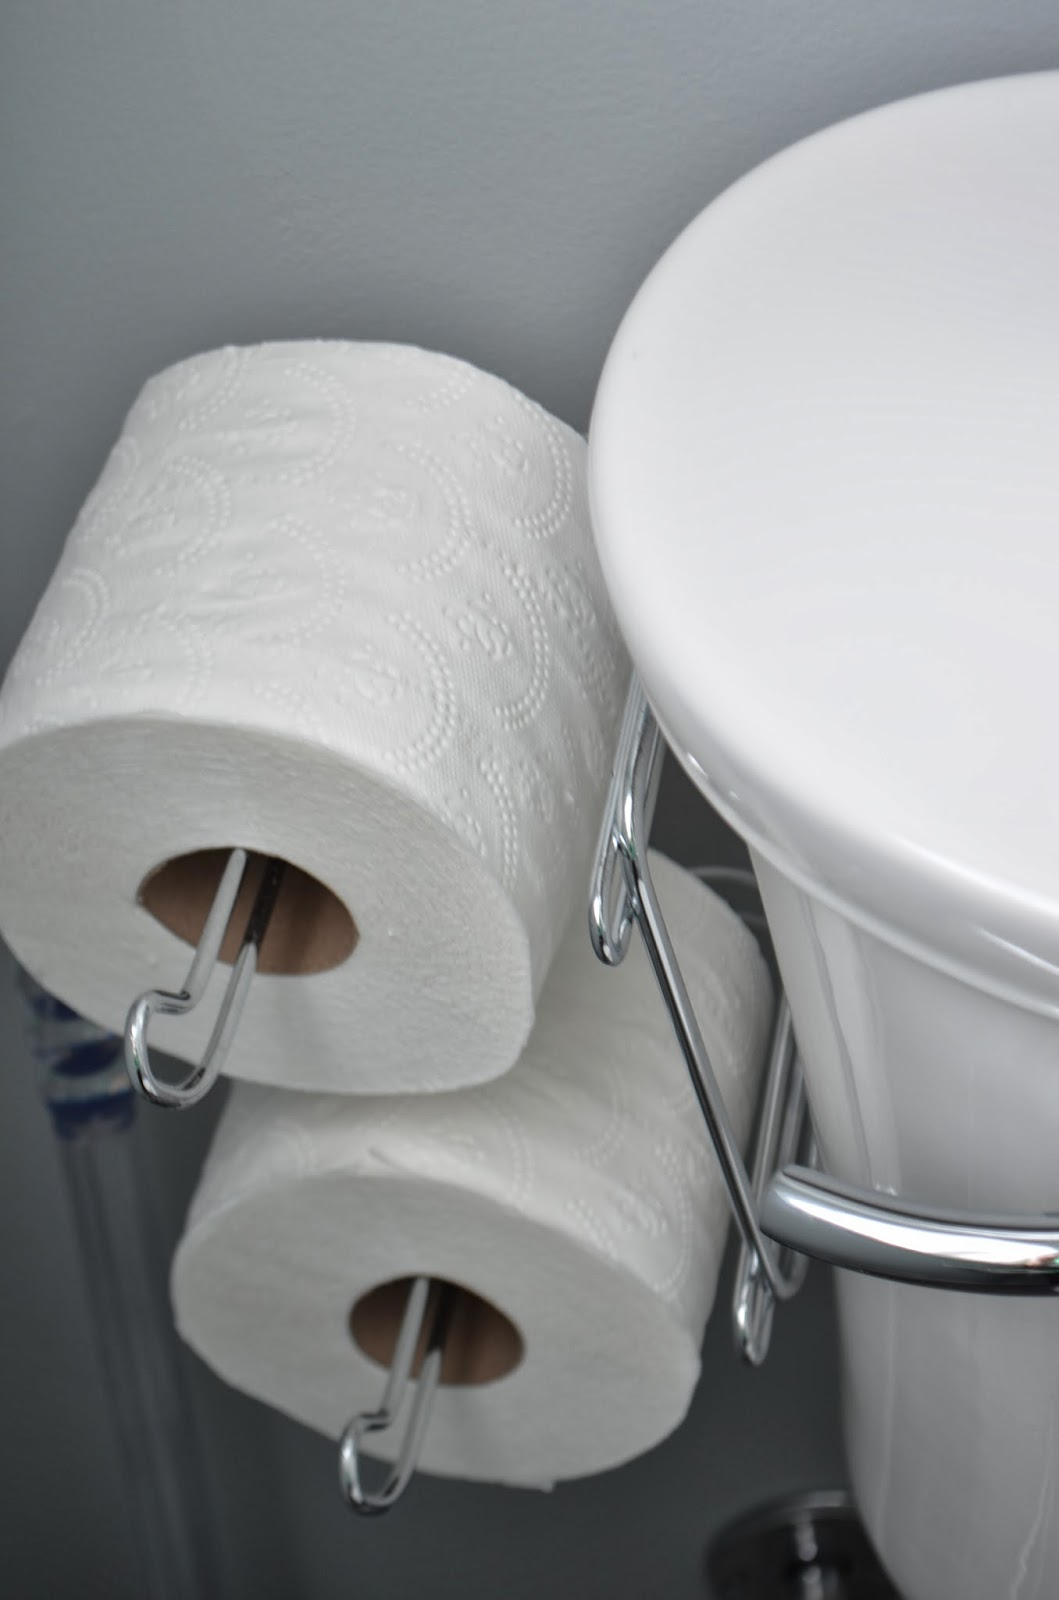 toilet paper holders that hook on the toilet